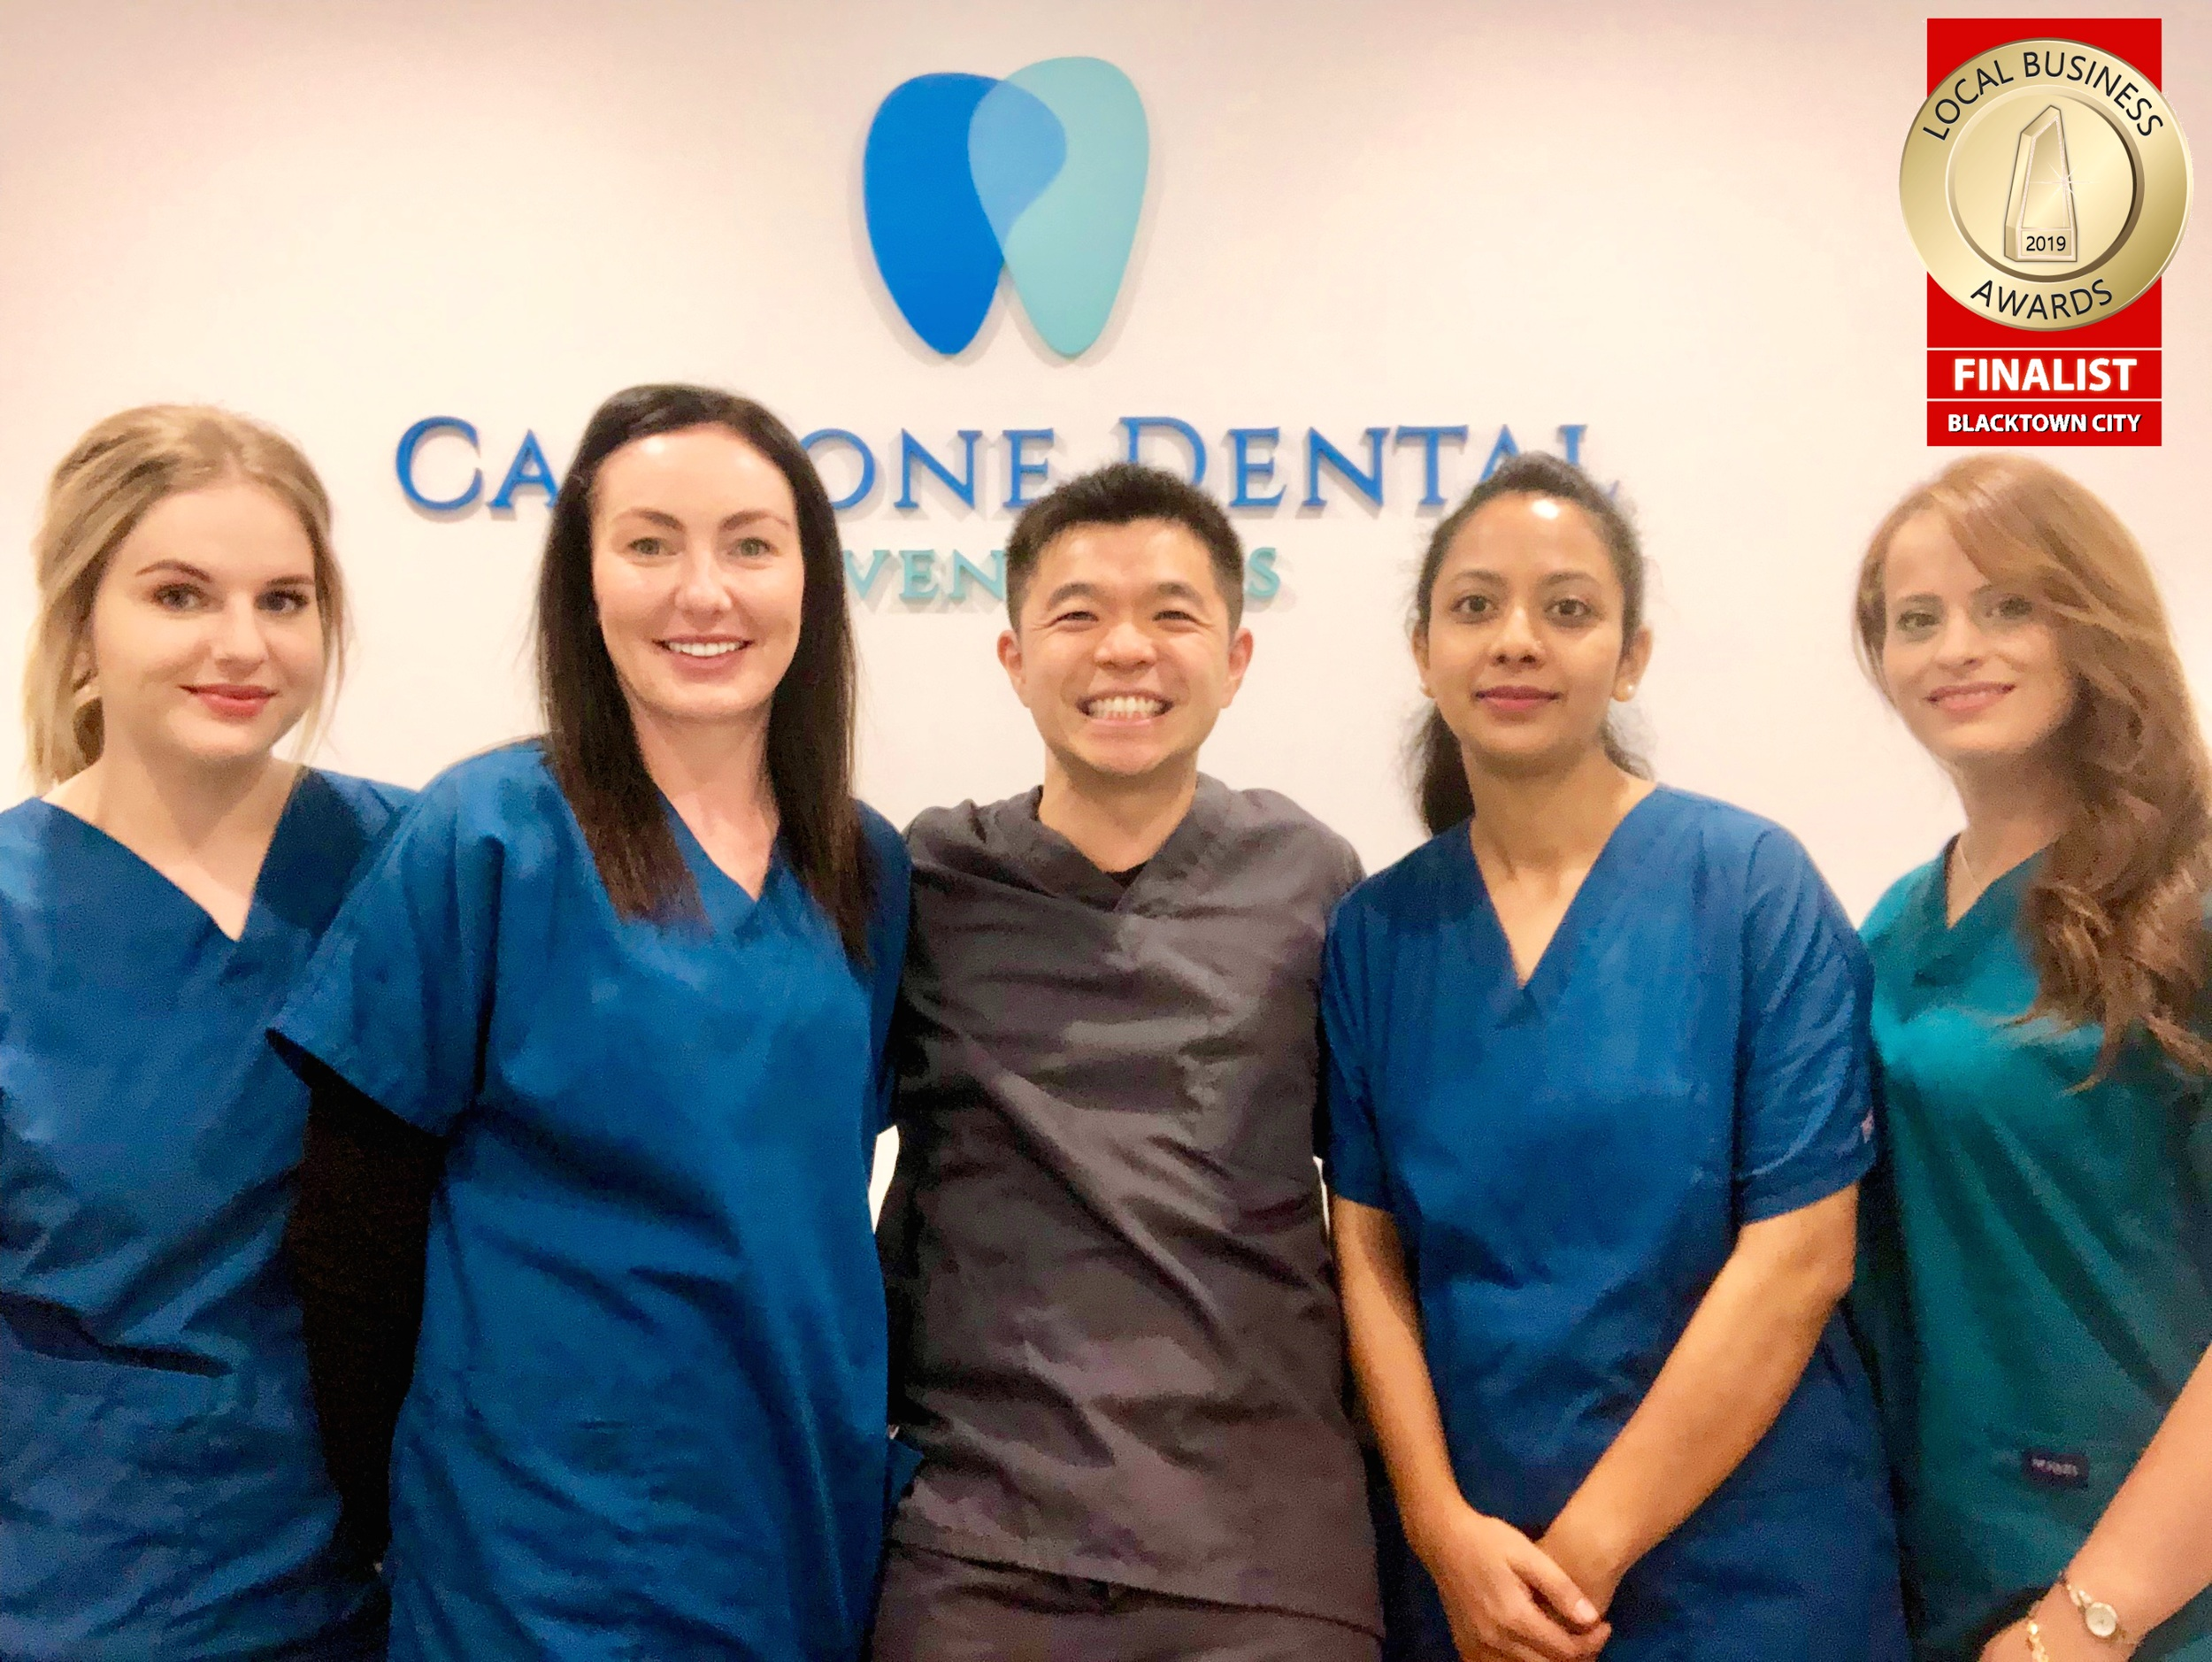 We seek to provide you with the best dental care possible - Read about our values here and understand what sets us apart from other no gap dentists.